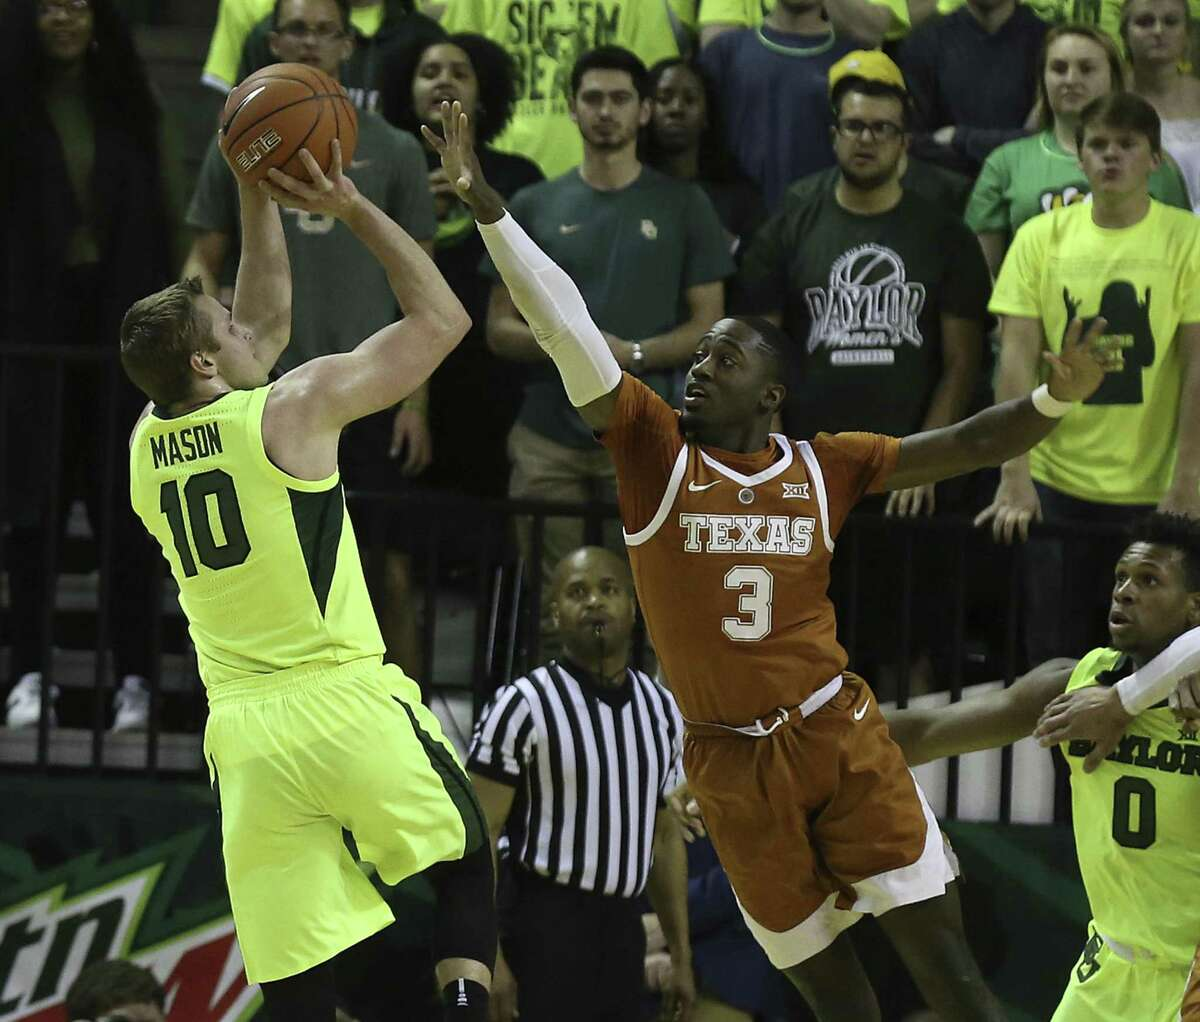 Per a report, Texas will visit Baylor in December as part of the Big 12's plan to fit in two conference games for each school before January.